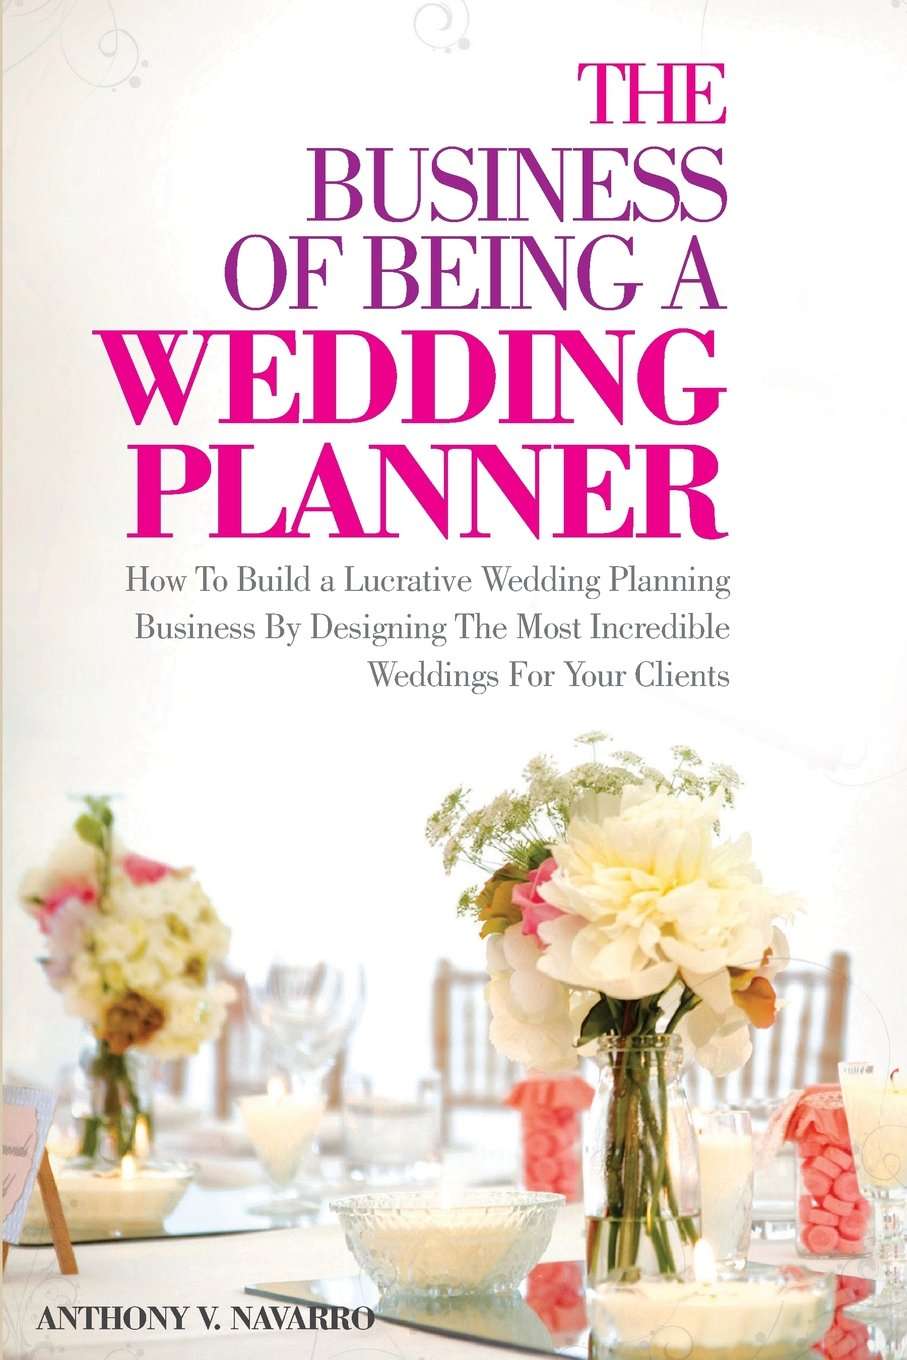 Business Being Wedding Planner Incredible product image